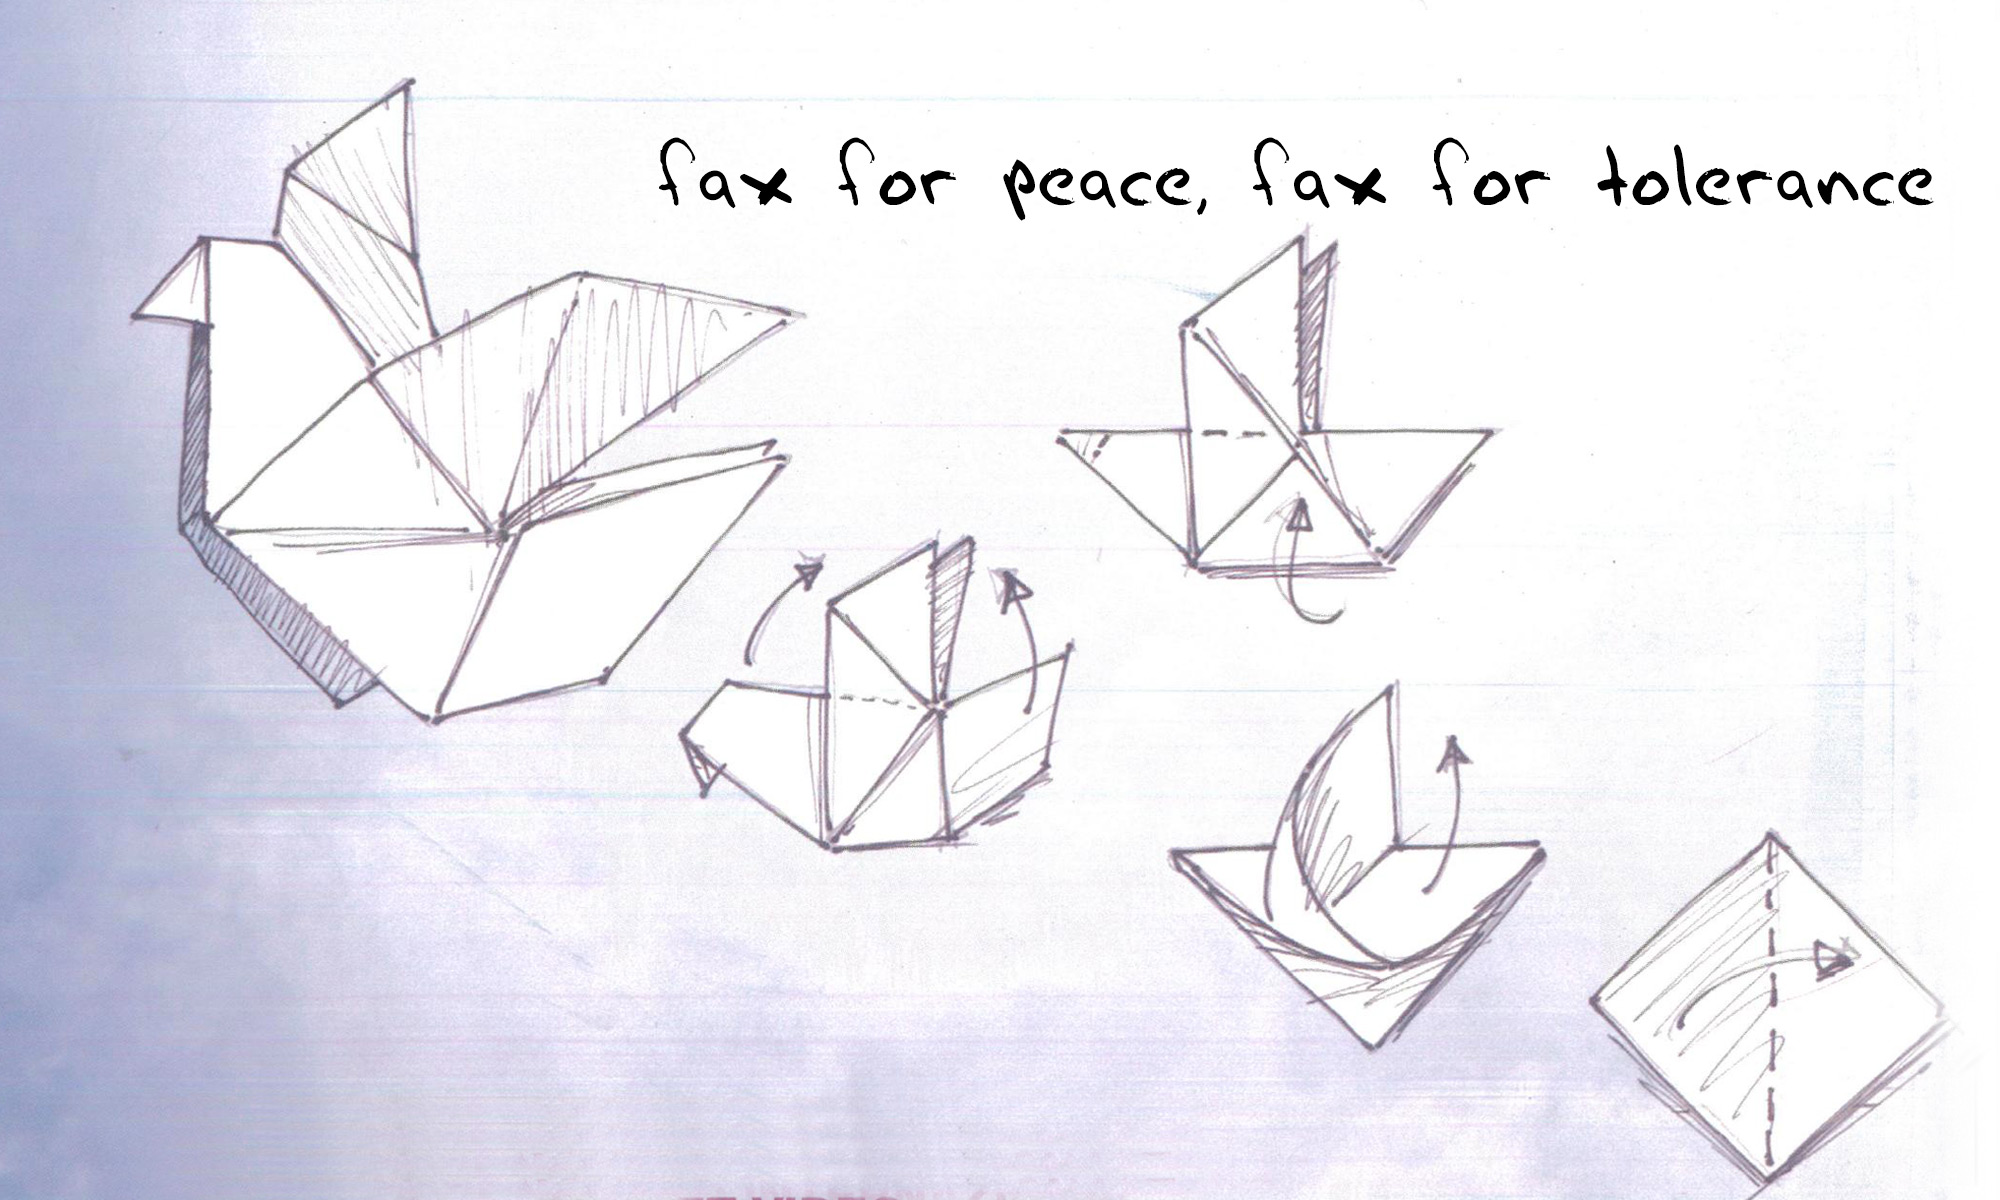 Fax for Peace